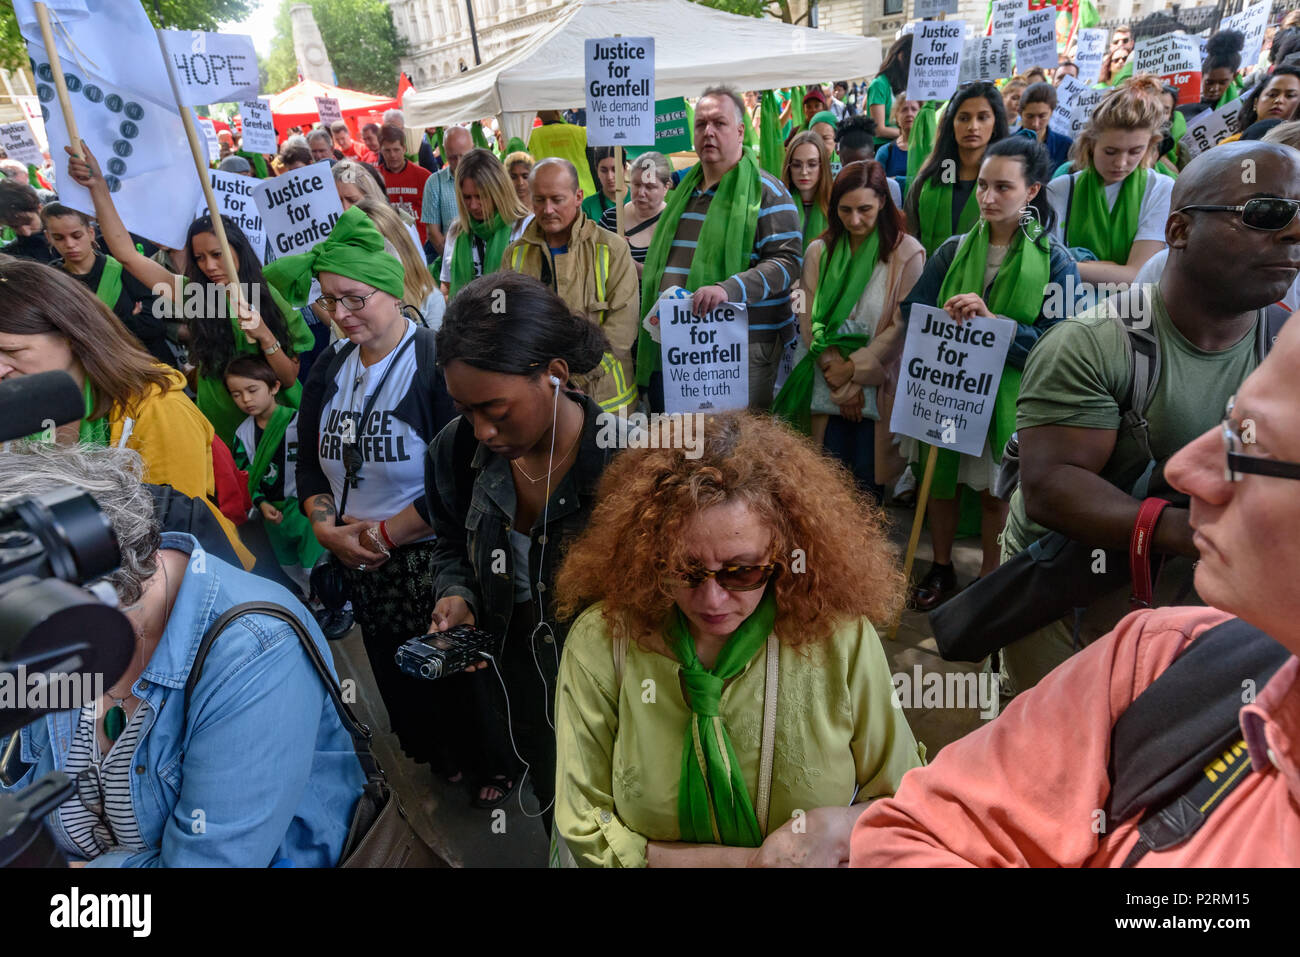 London, UK. 16th June 2018. People stand in a 72 second silence at Downing St remembering the 72 killed in the Grenfell fire a year ago at a protest organised by Justice4Grenfell and the FBU (Fire Brigades Union.) After some speeches they marched to the Home Office for a brief protest before returning to Downing St for more speeches. mmodation. 300 tower blocks across Credit: Peter Marshall/Alamy Live News - Stock Image